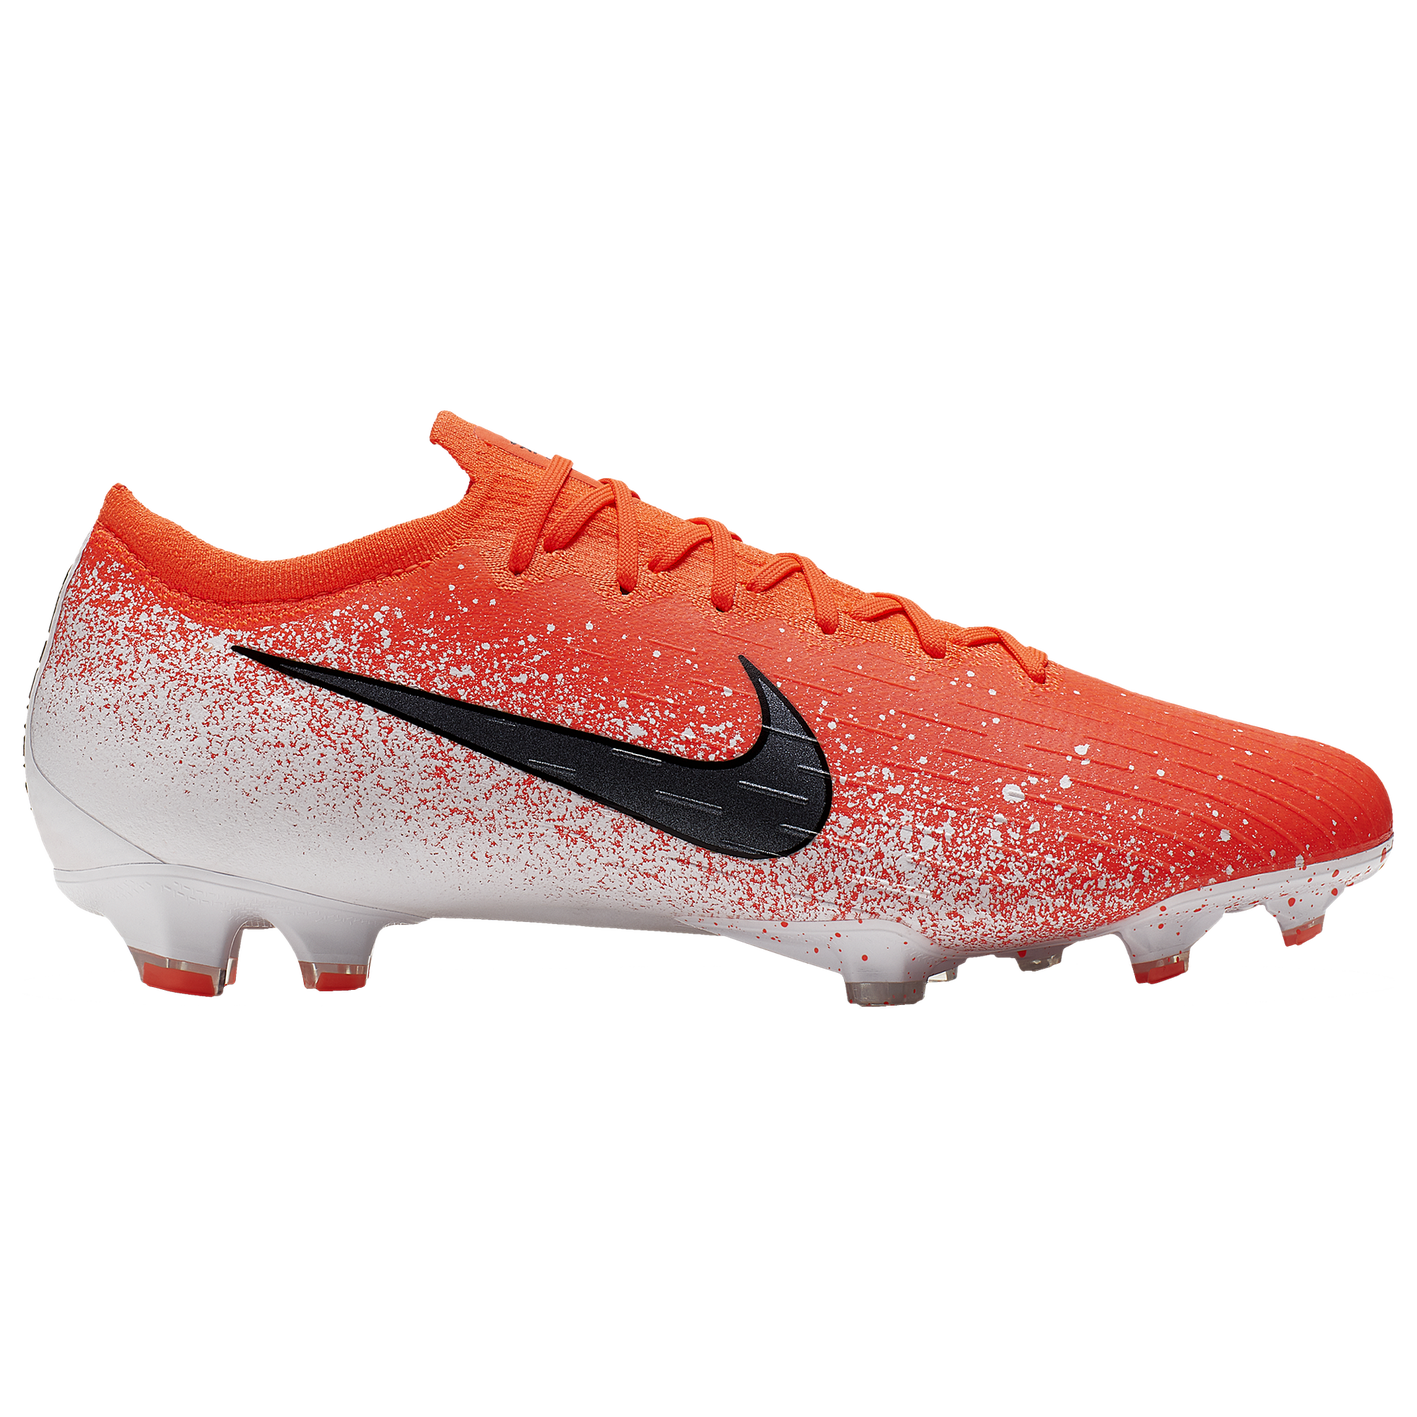 c8ed8b6a1 Nike Mercurial Vapor 360 Elite FG - Men's - Soccer - Shoes - Bright ...